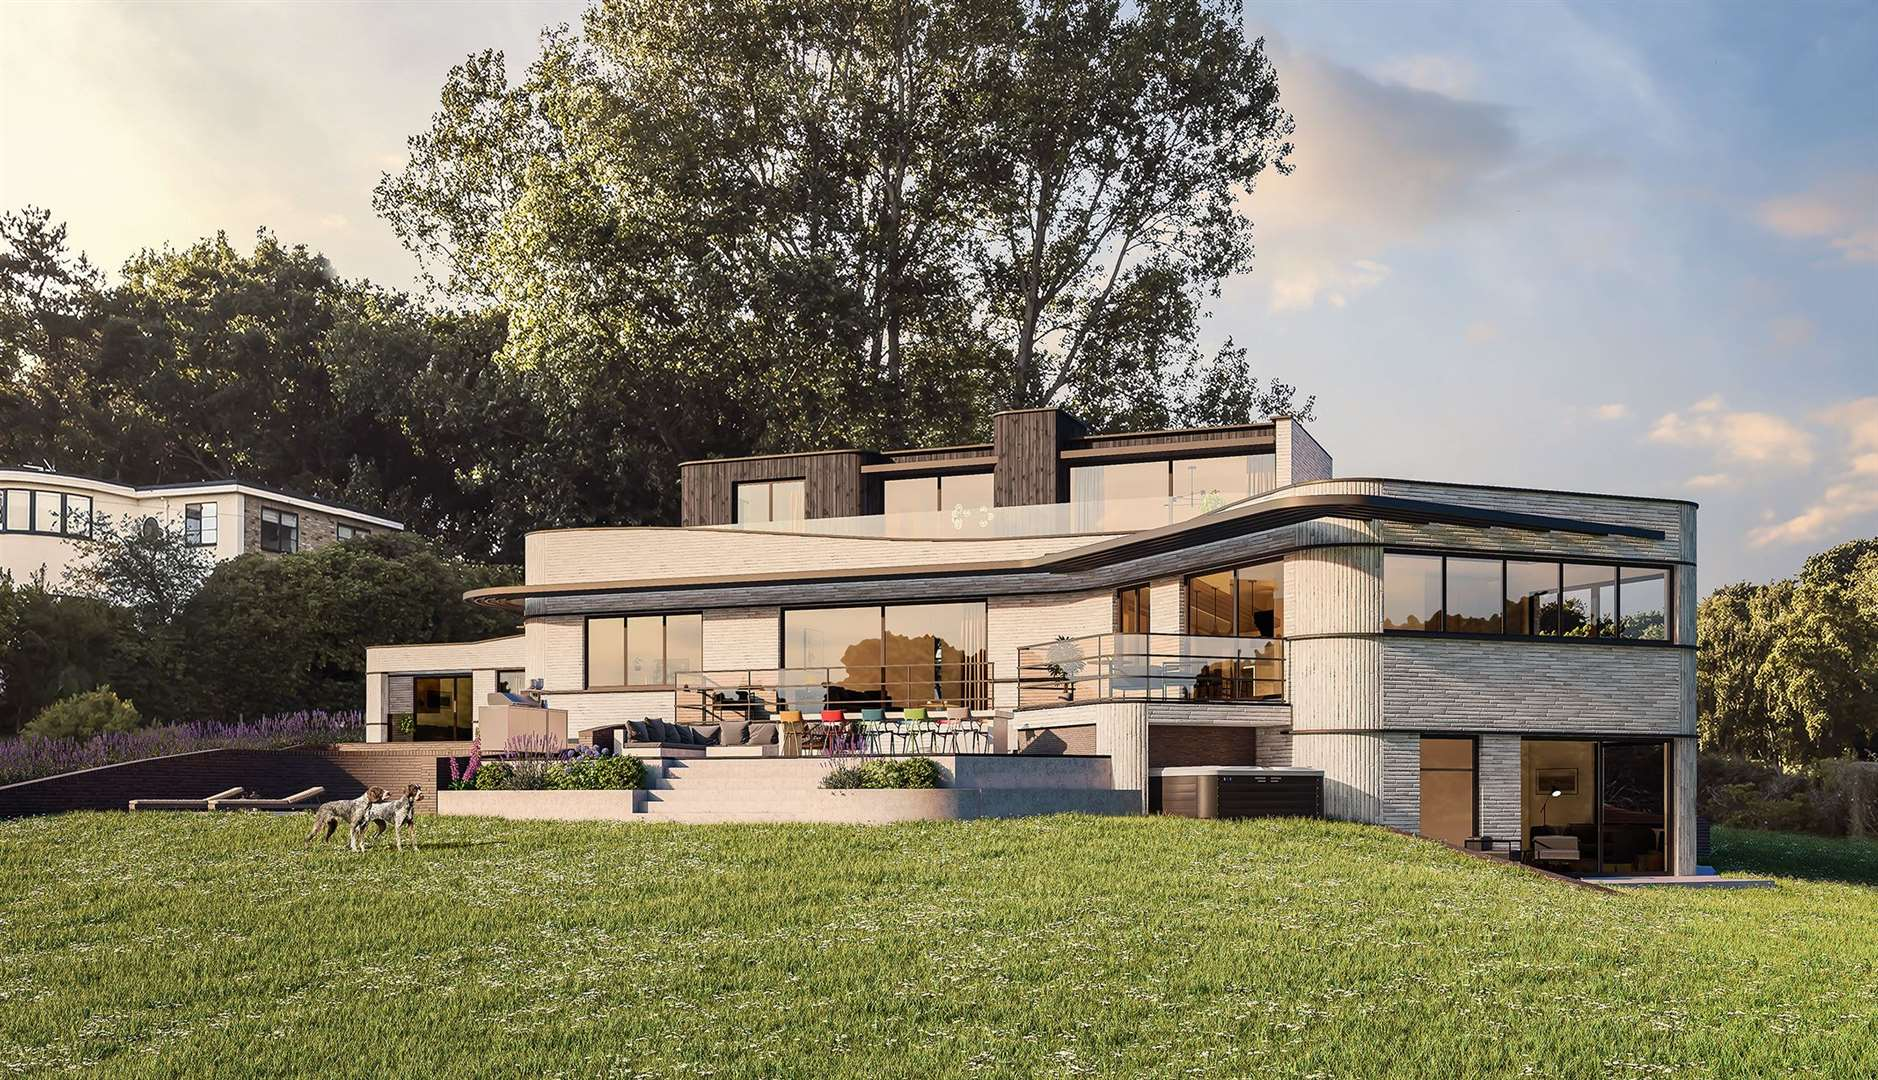 Set to replace the existing Ancona house, CGIs show what the new build will look like if approved. Picture: Hollaway